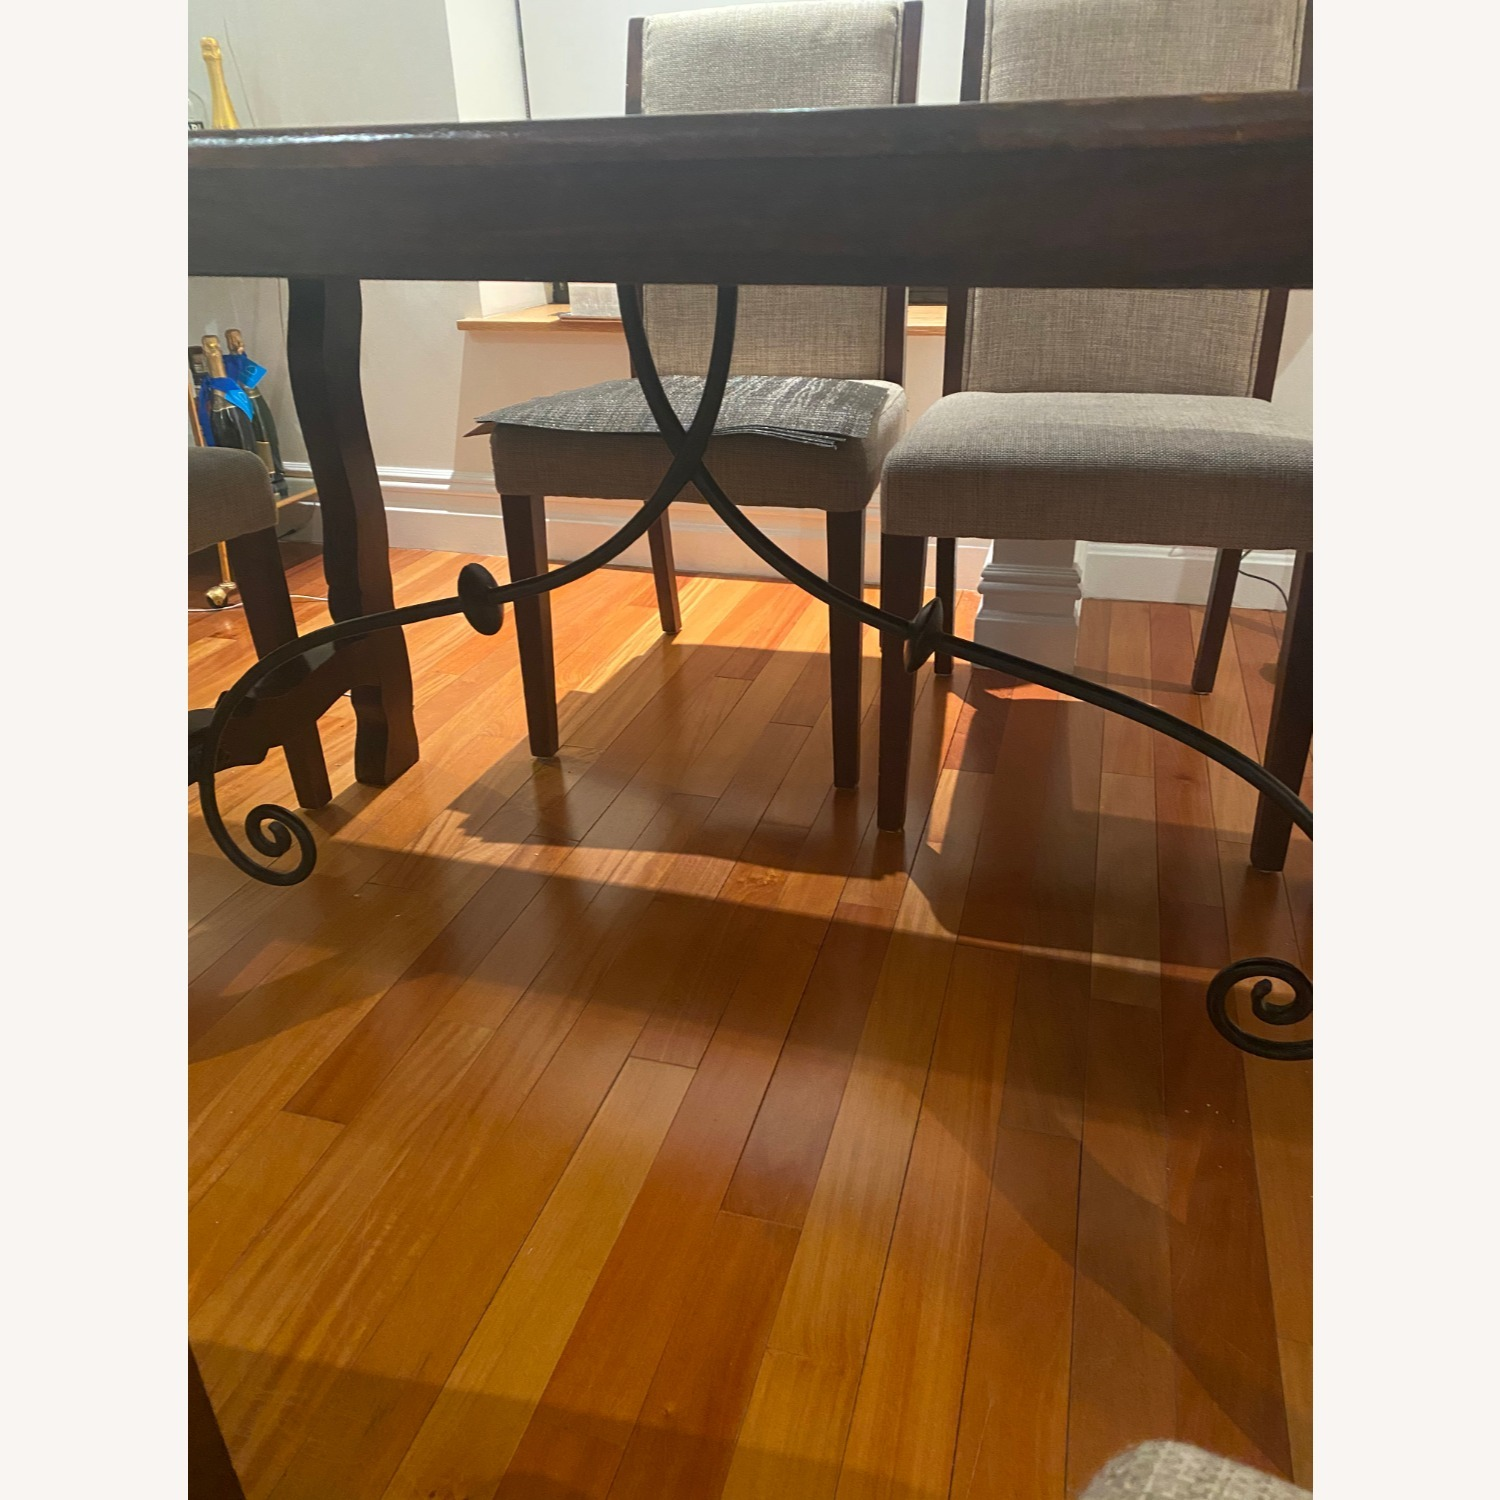 Pier 1 Imports Dark Wood Dining Table, Seats 6 - image-3